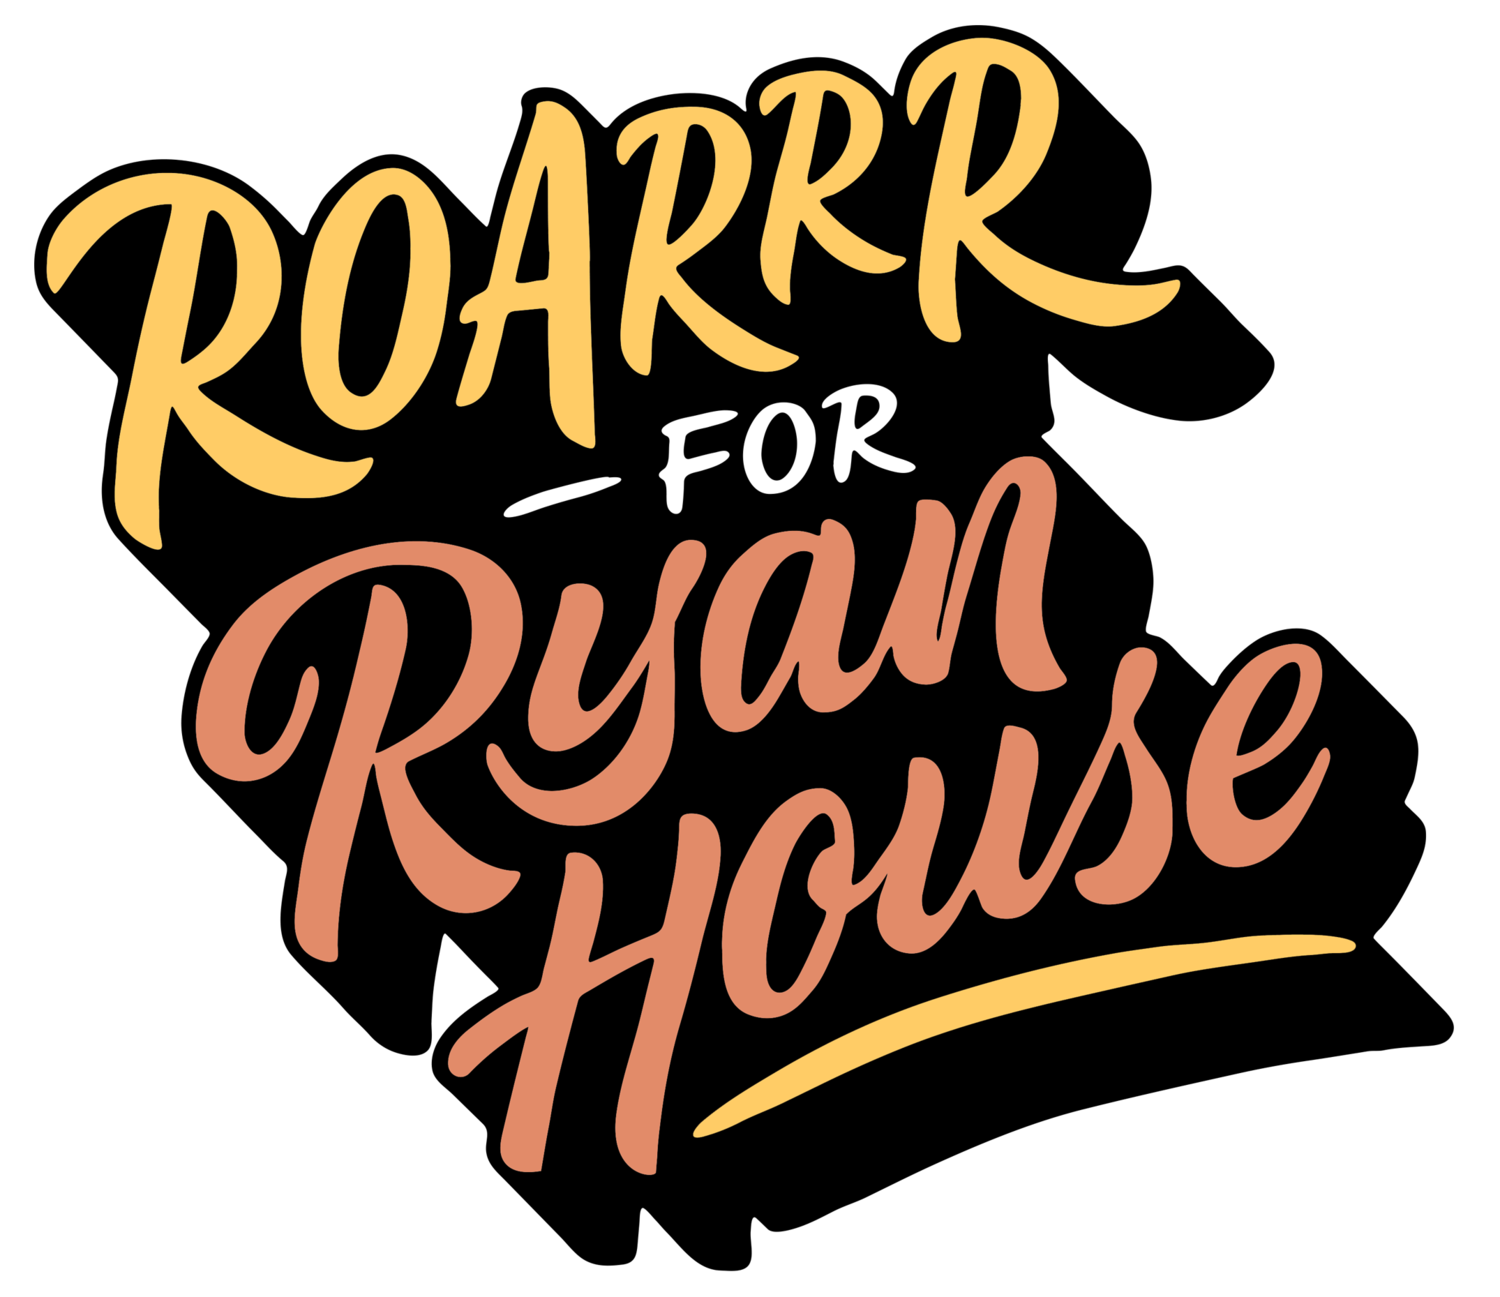 Roarrr for Ryan House